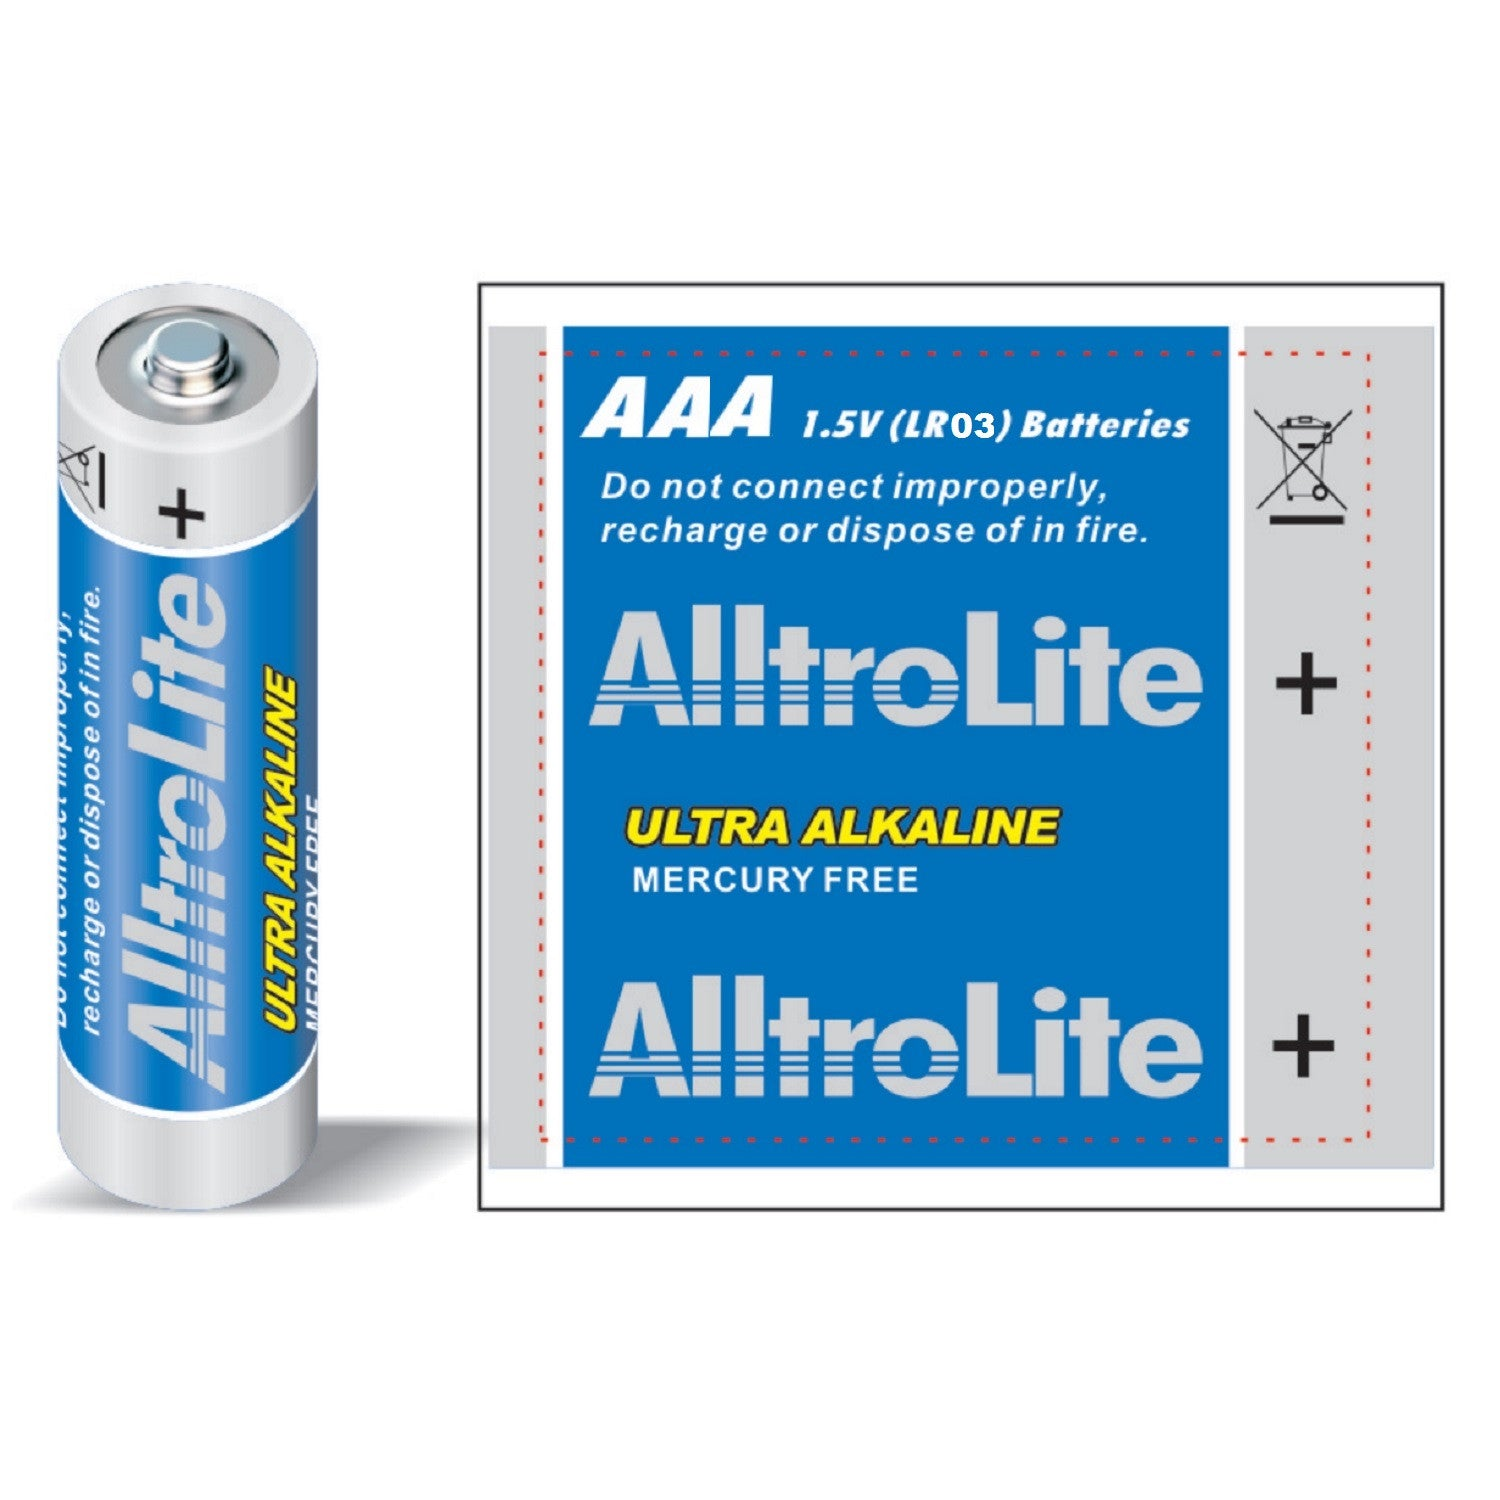 AAA Alkaline Battery 4 Pack - alltrolite